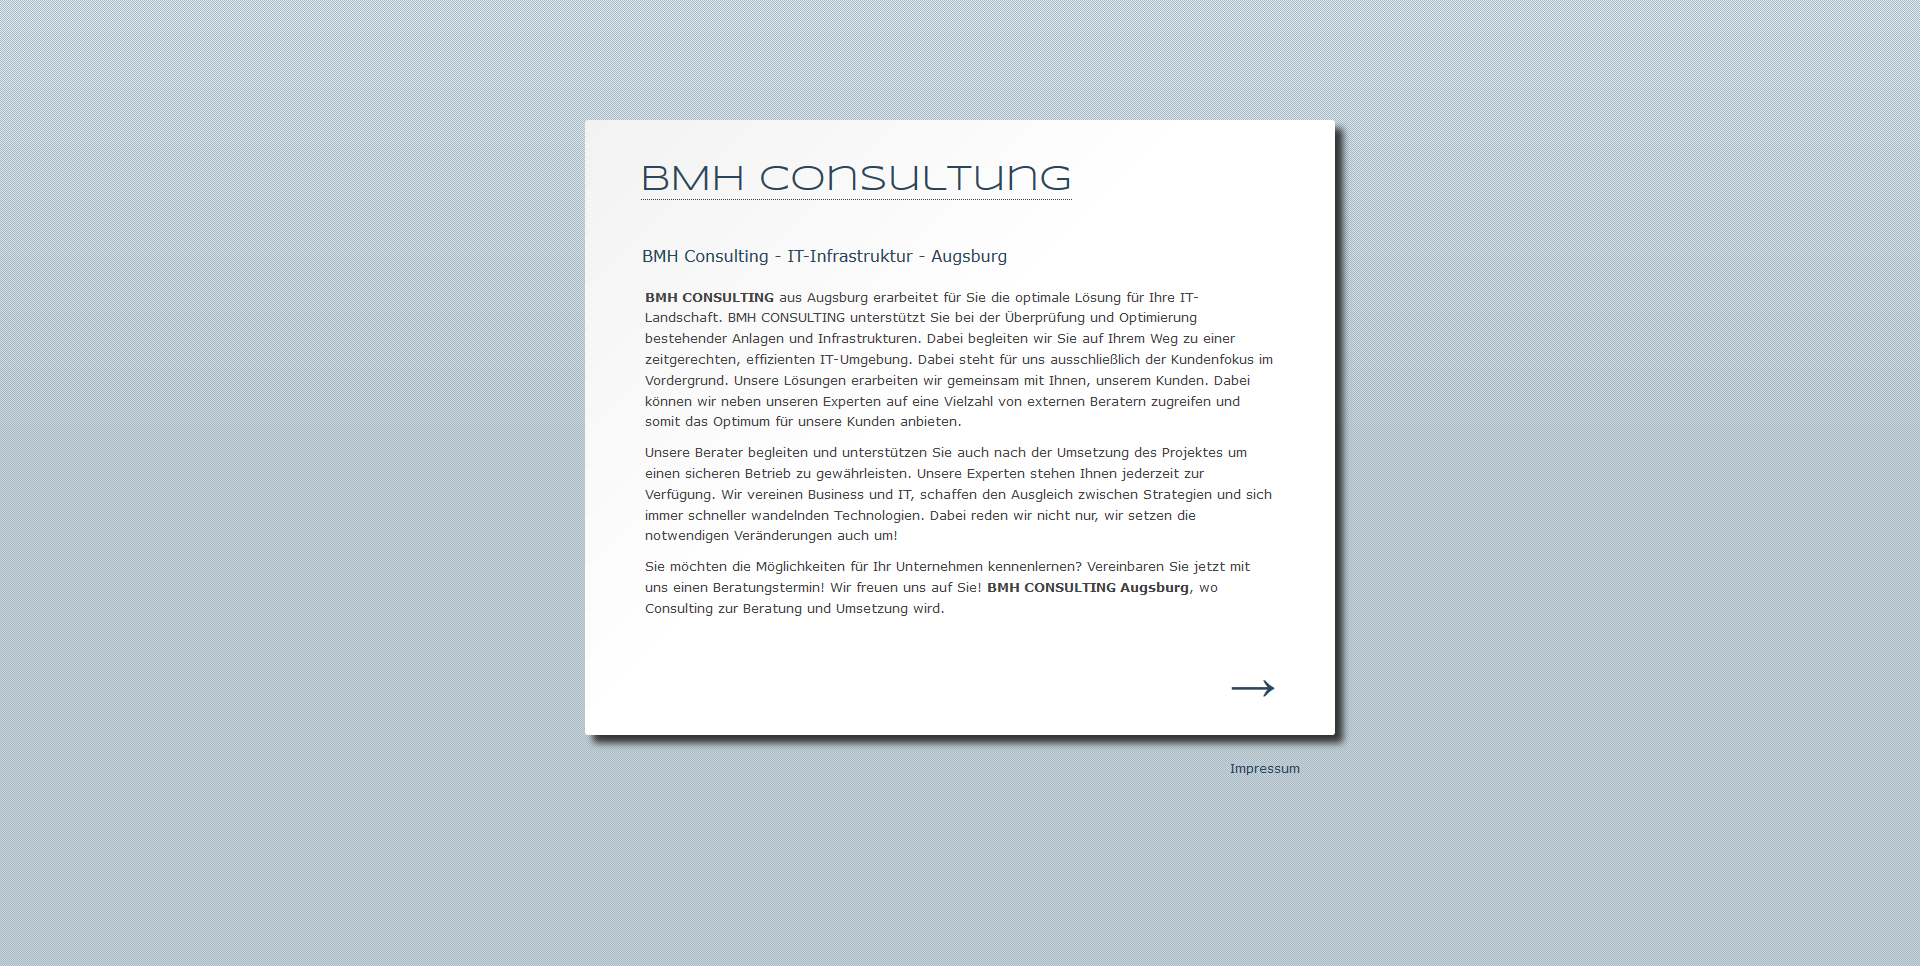 BMH Consulting